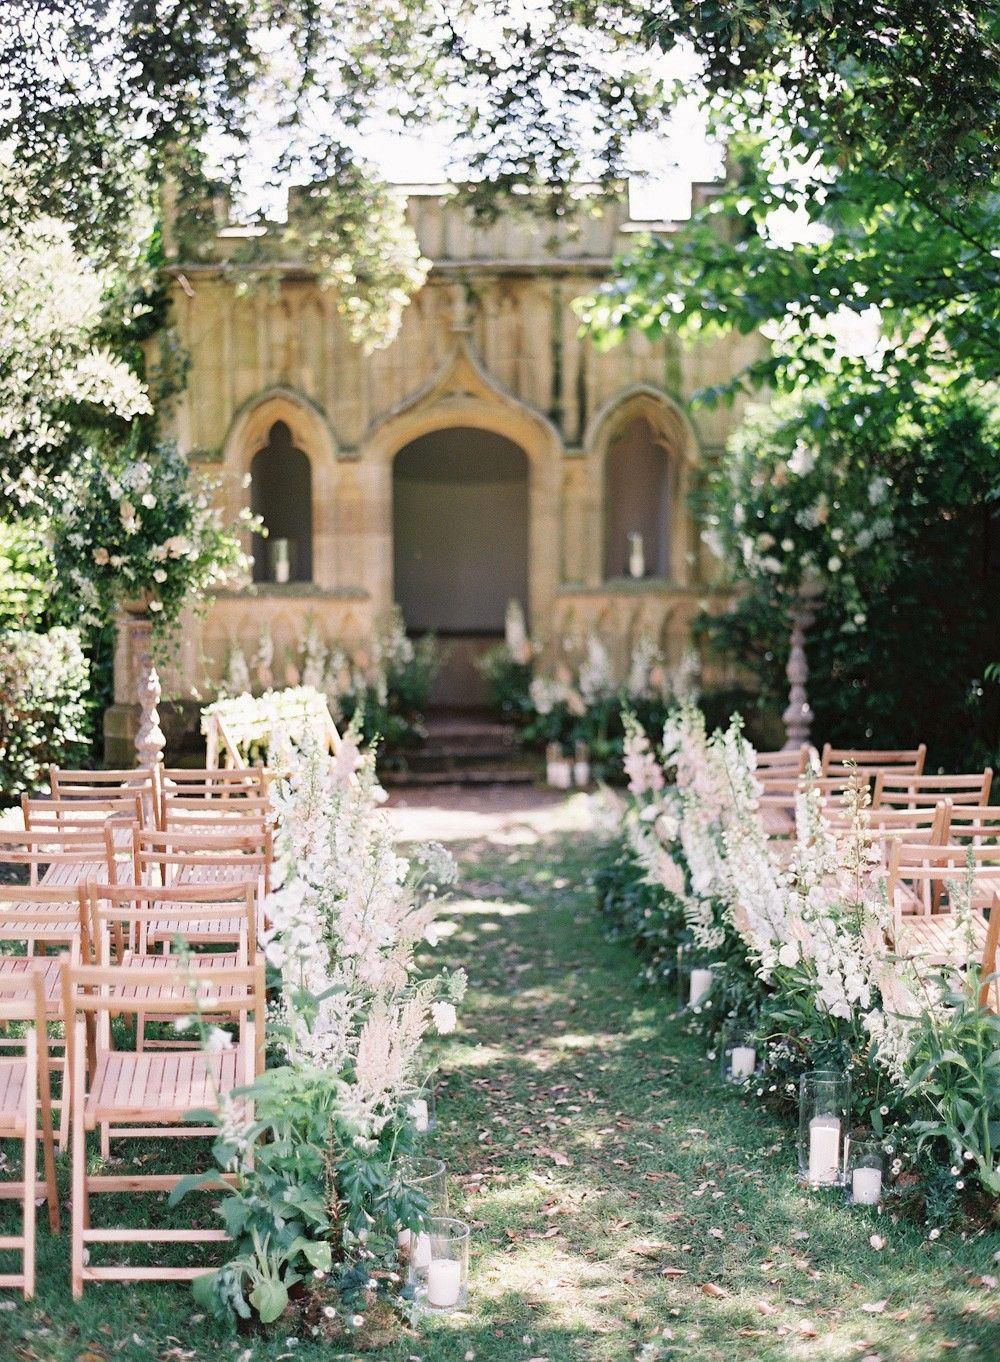 Joyce and Stephen's Ethereal Floral Wedding by Catherine